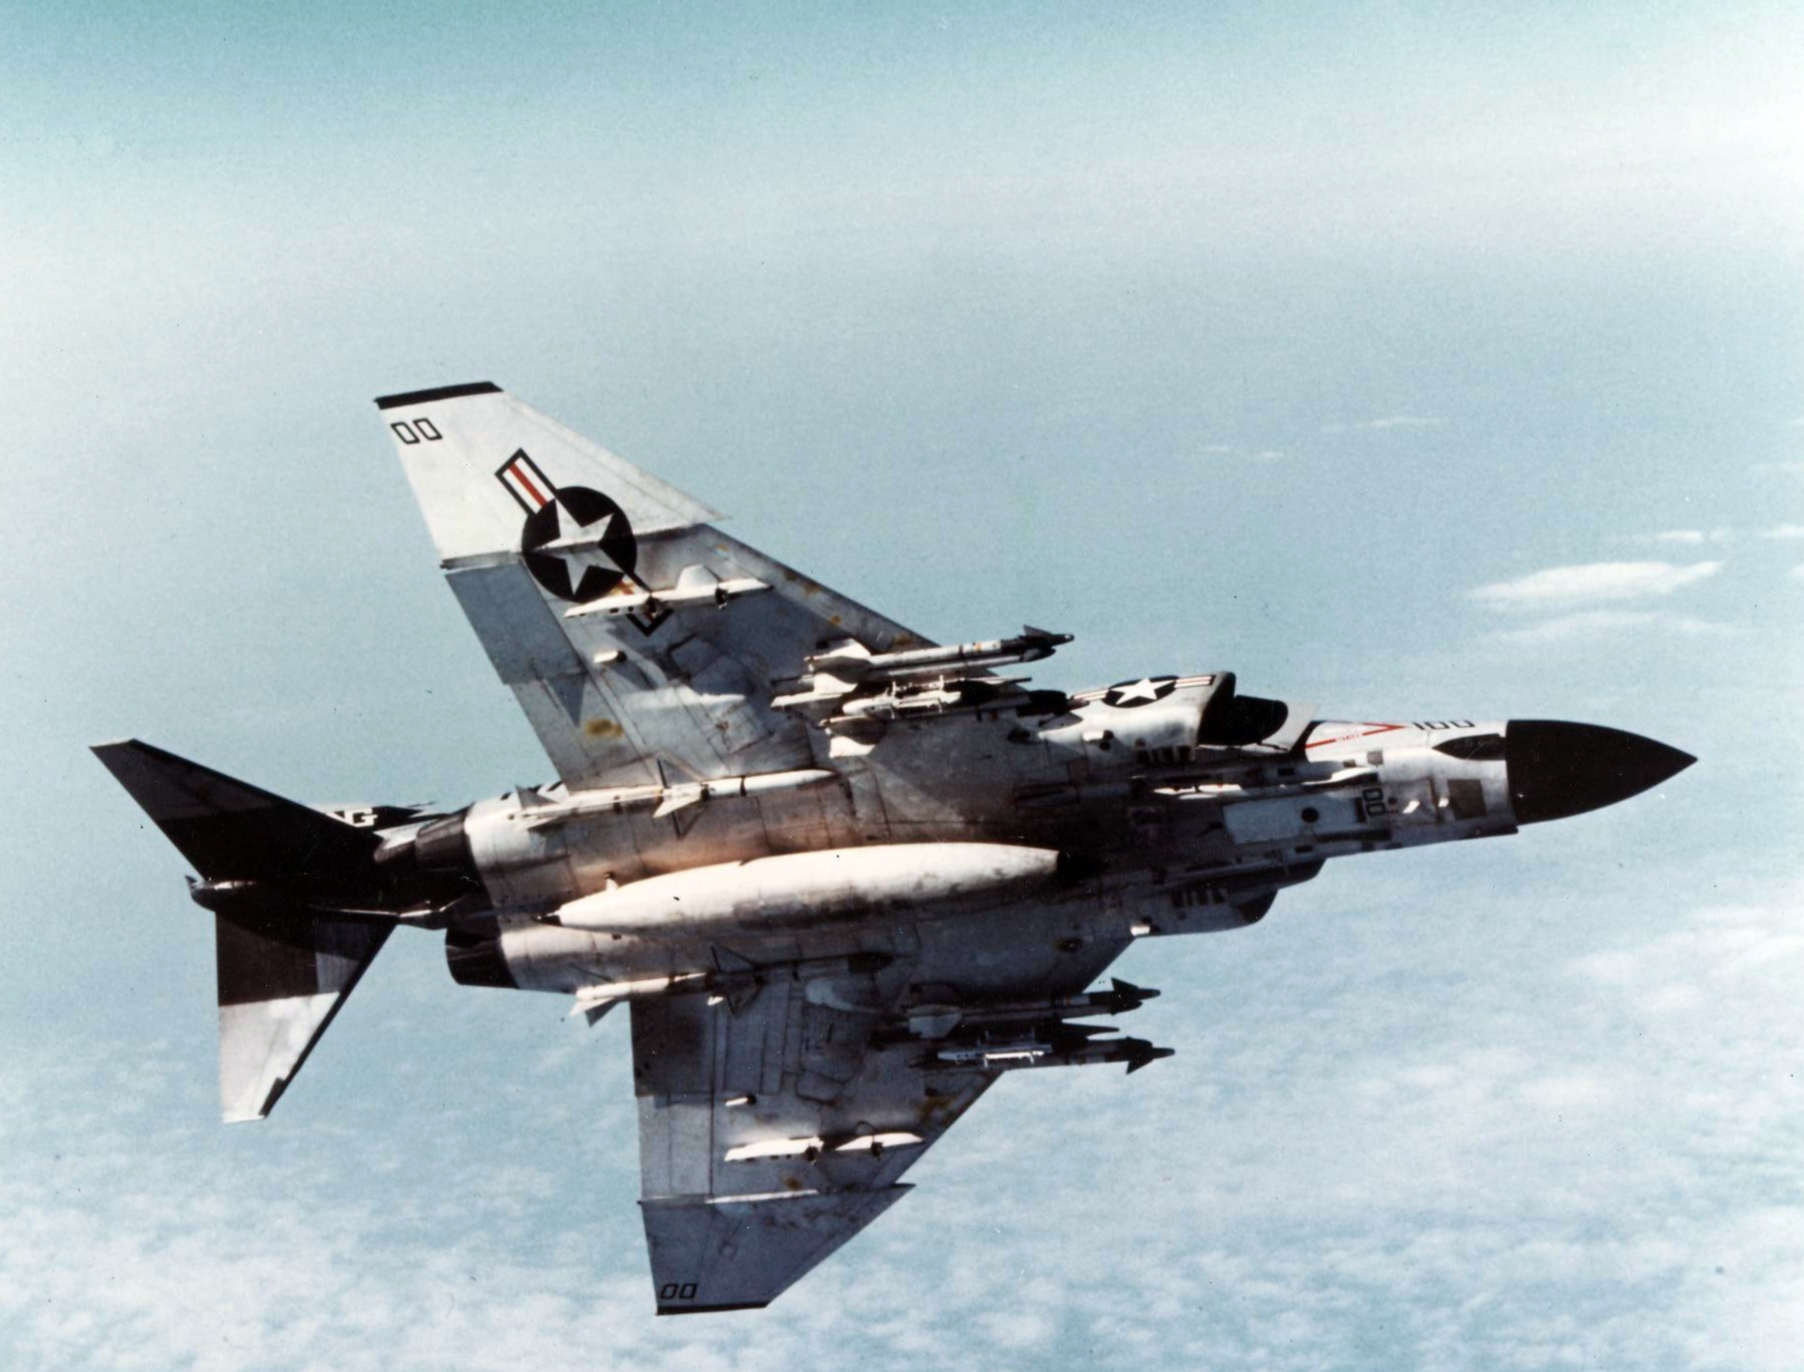 F-4J_VF-96_Showtime_100_armed_from_below.jpg